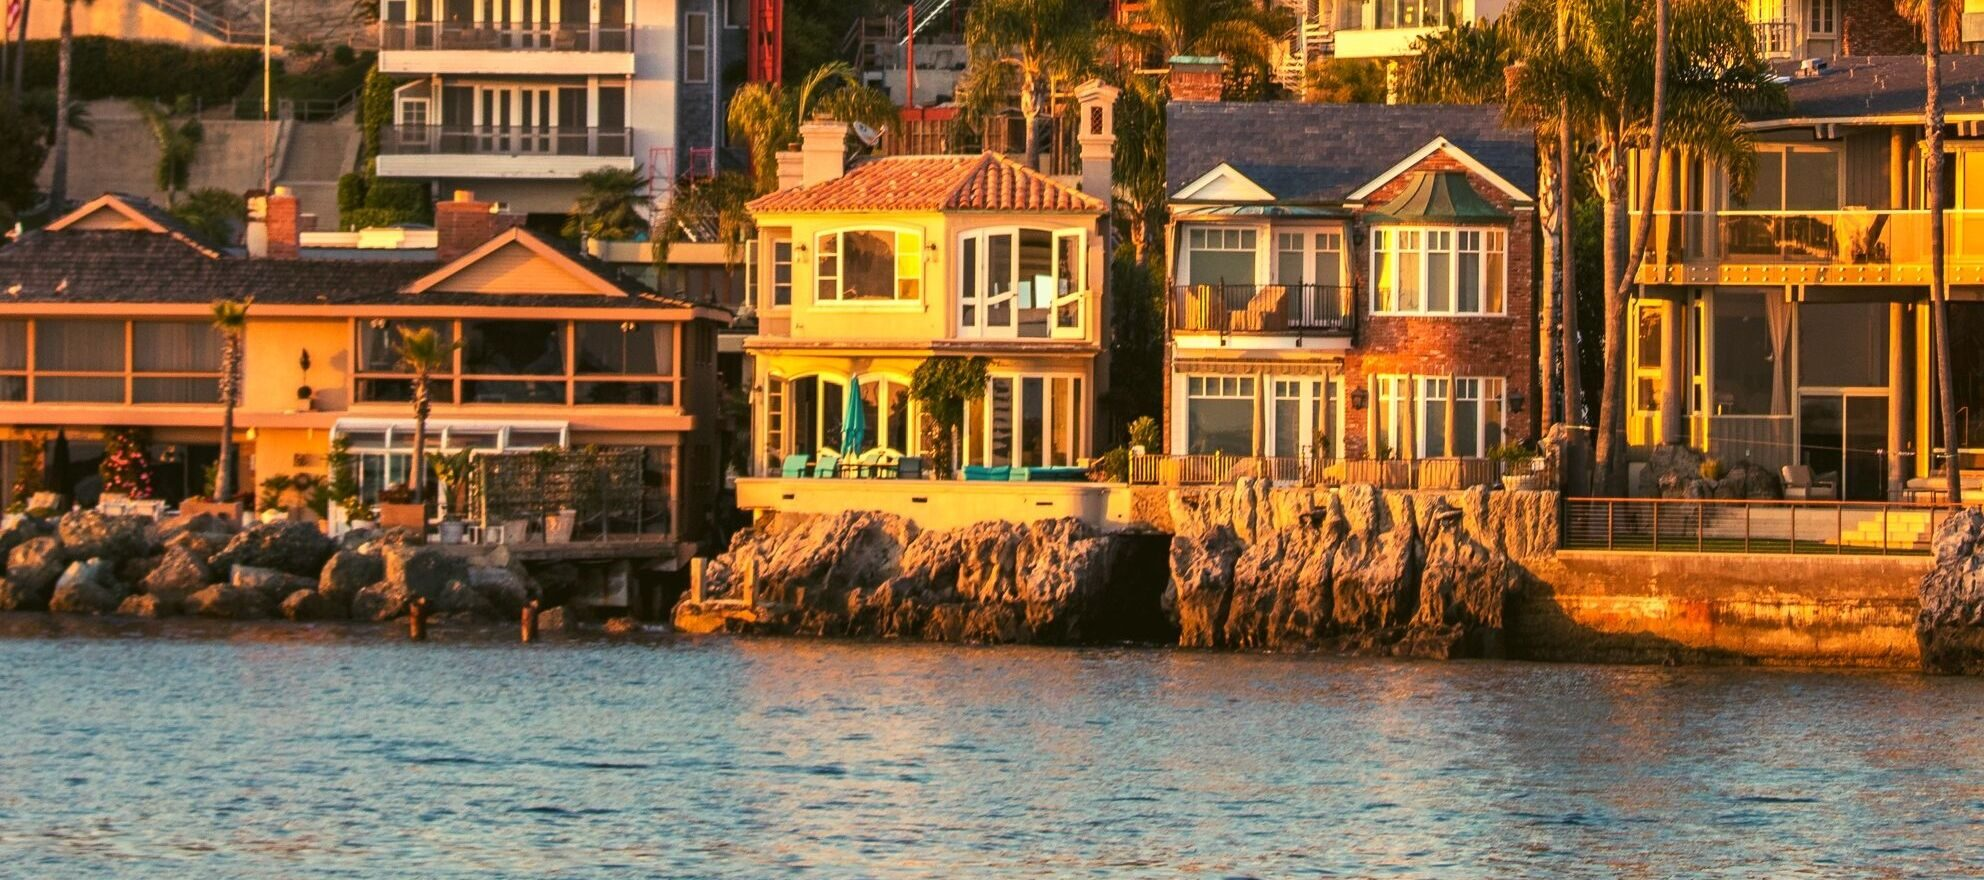 Life by the ocean: 6 tips for selling coastal homes